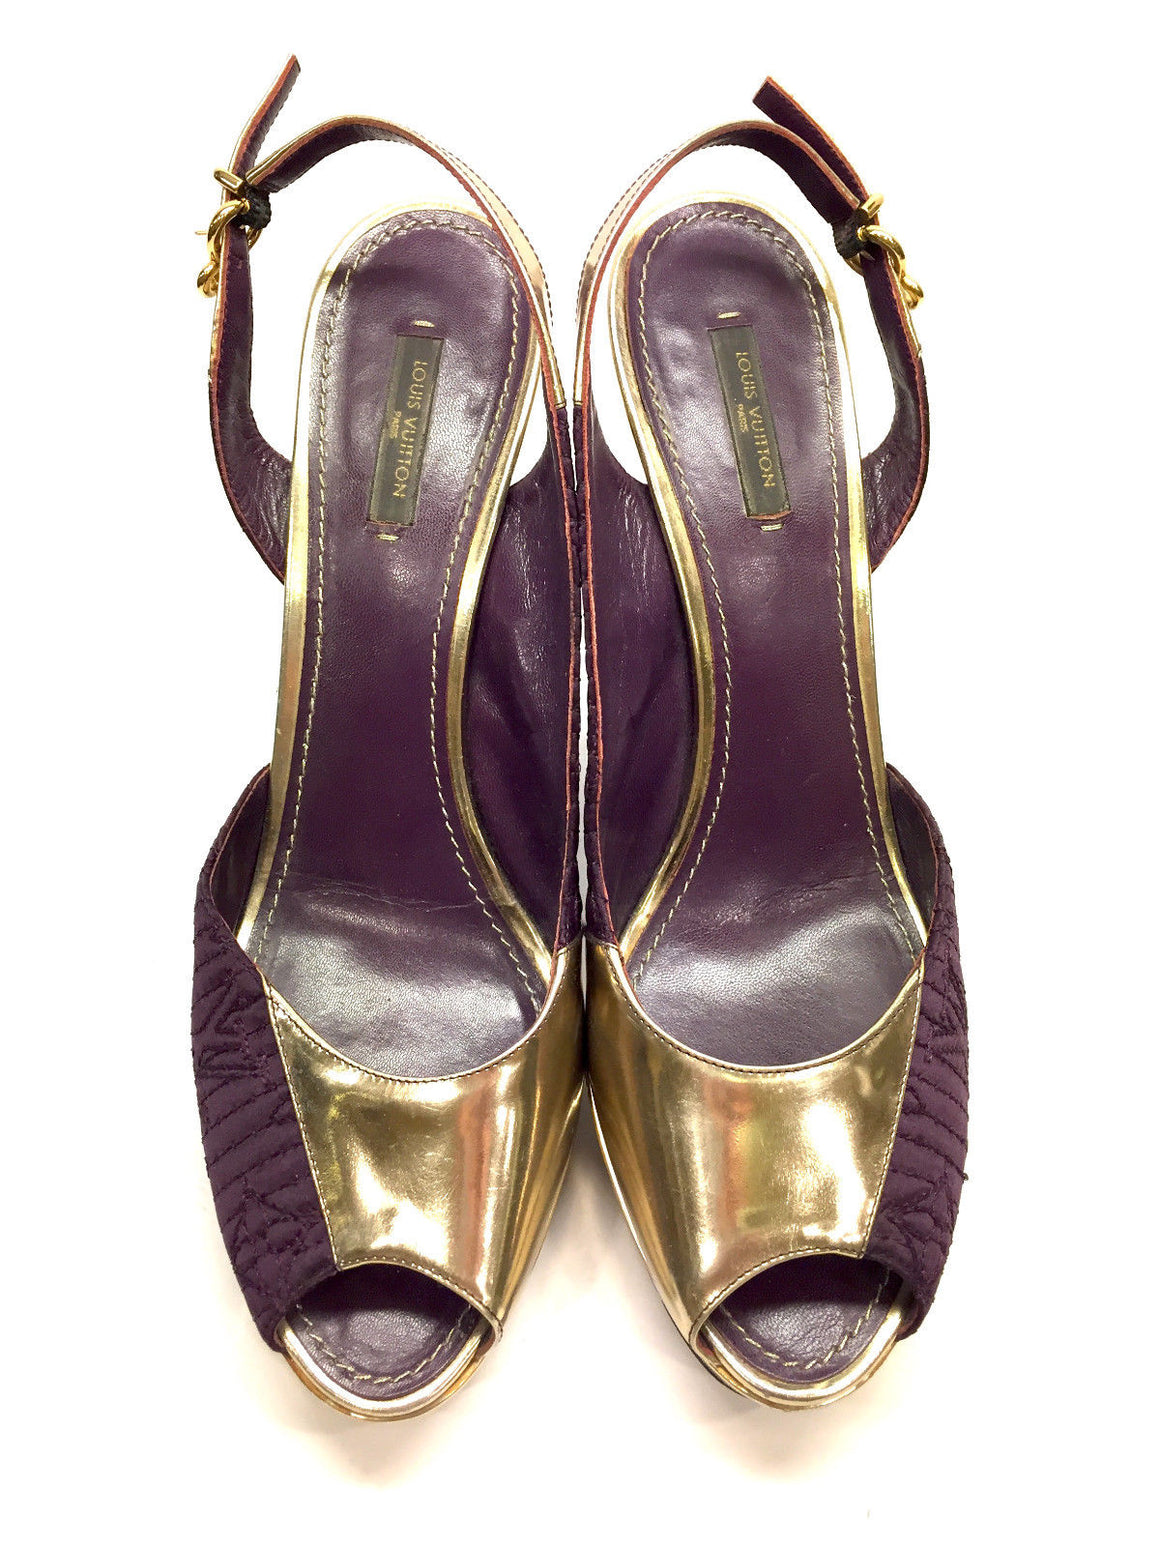 LOUIS VUITTON Purple Silk / Gold Leather Peep-Toe Platform Heel Slingbacks Shoes  Size: EU41/US10.5